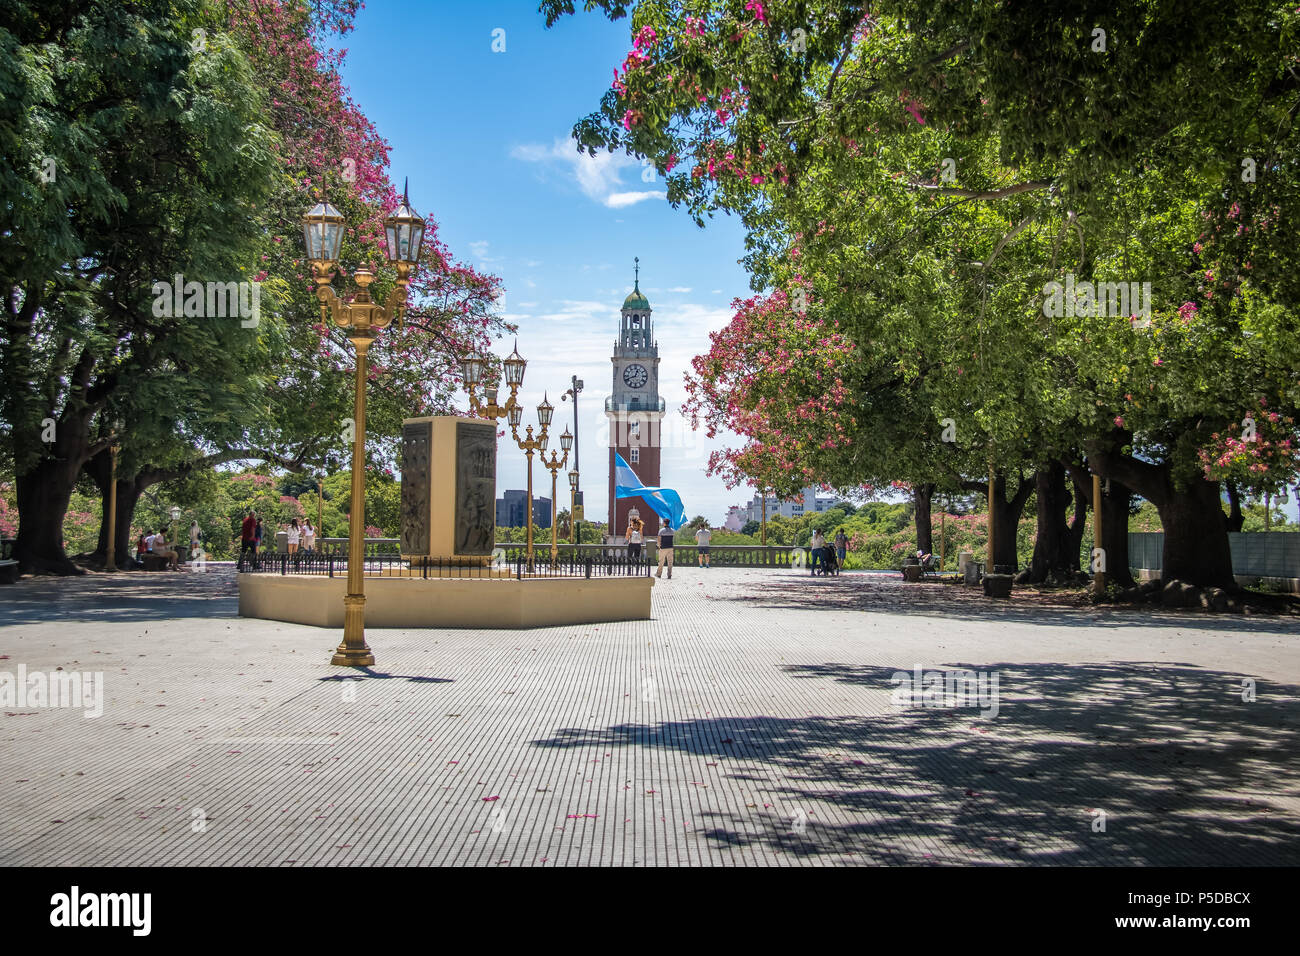 Torre Monumental or Torre de los Ingleses (Tower of the English) and General San Martin Plaza in Retiro - Buen - Stock Image